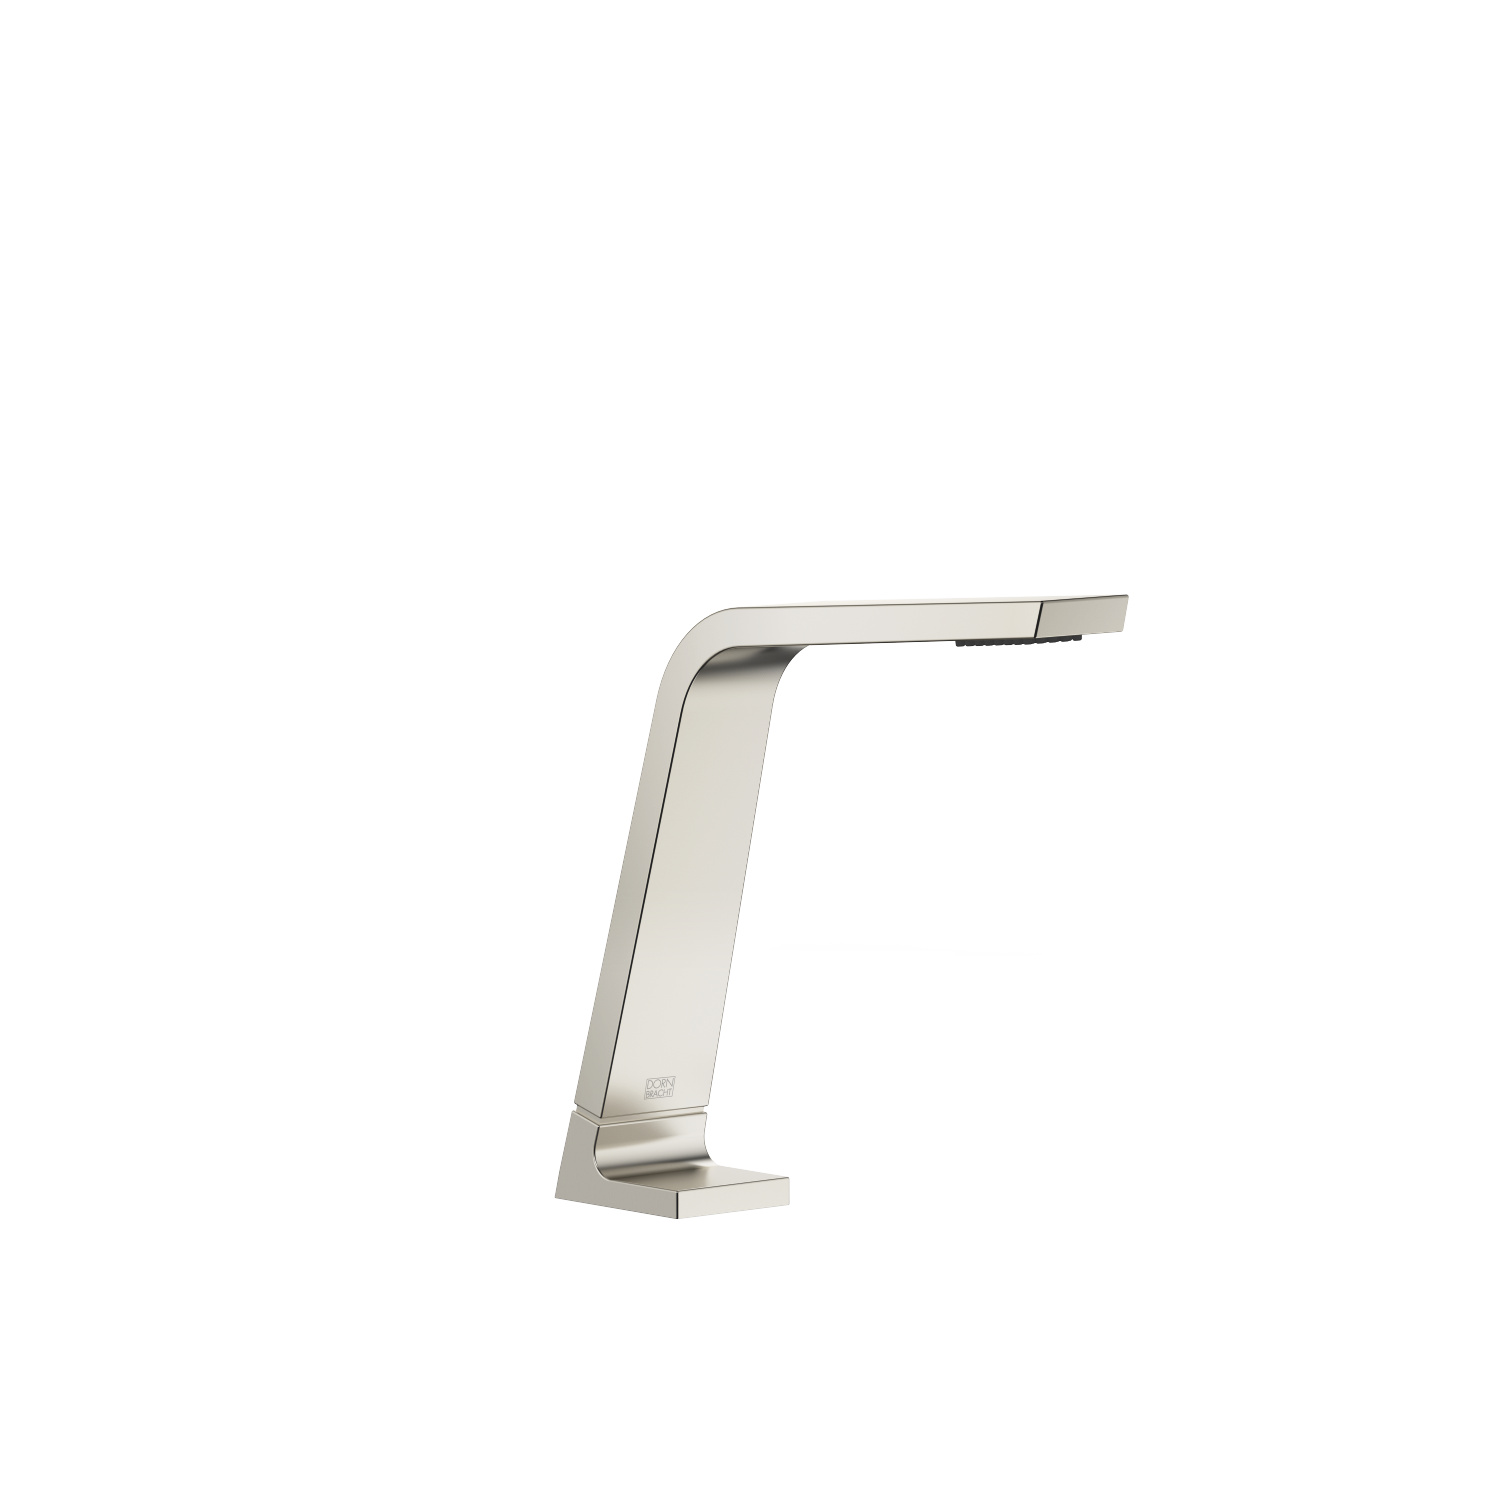 Lavatory spout, deck-mounted without drain - platinum matte - 13 715 705-06